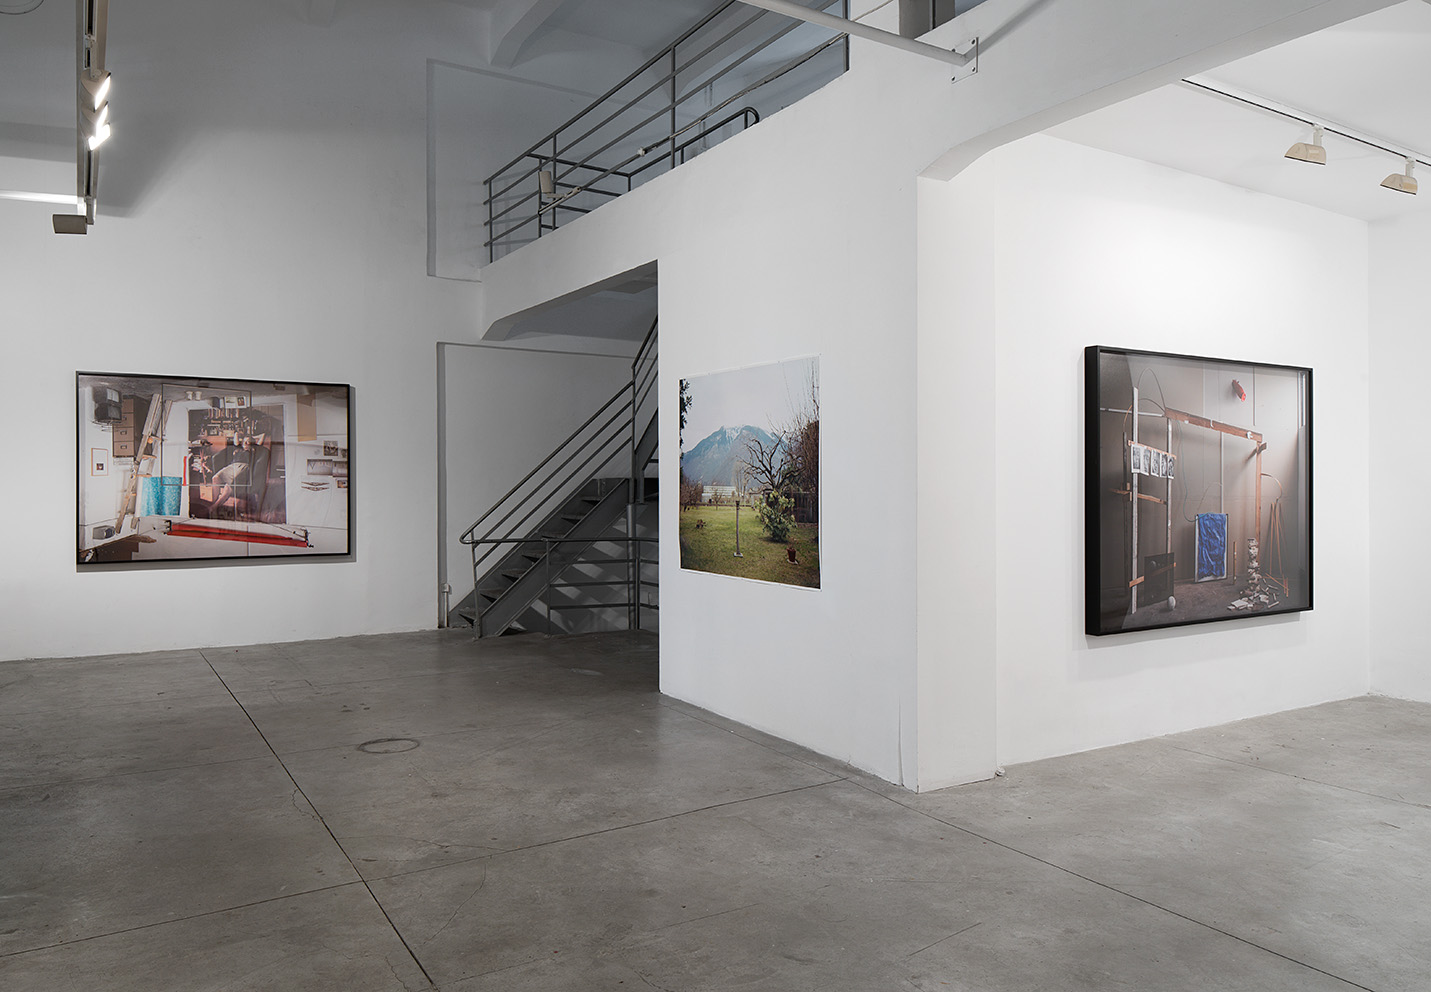 Aleph, Mark Yashaev, Installation view (2).jpg